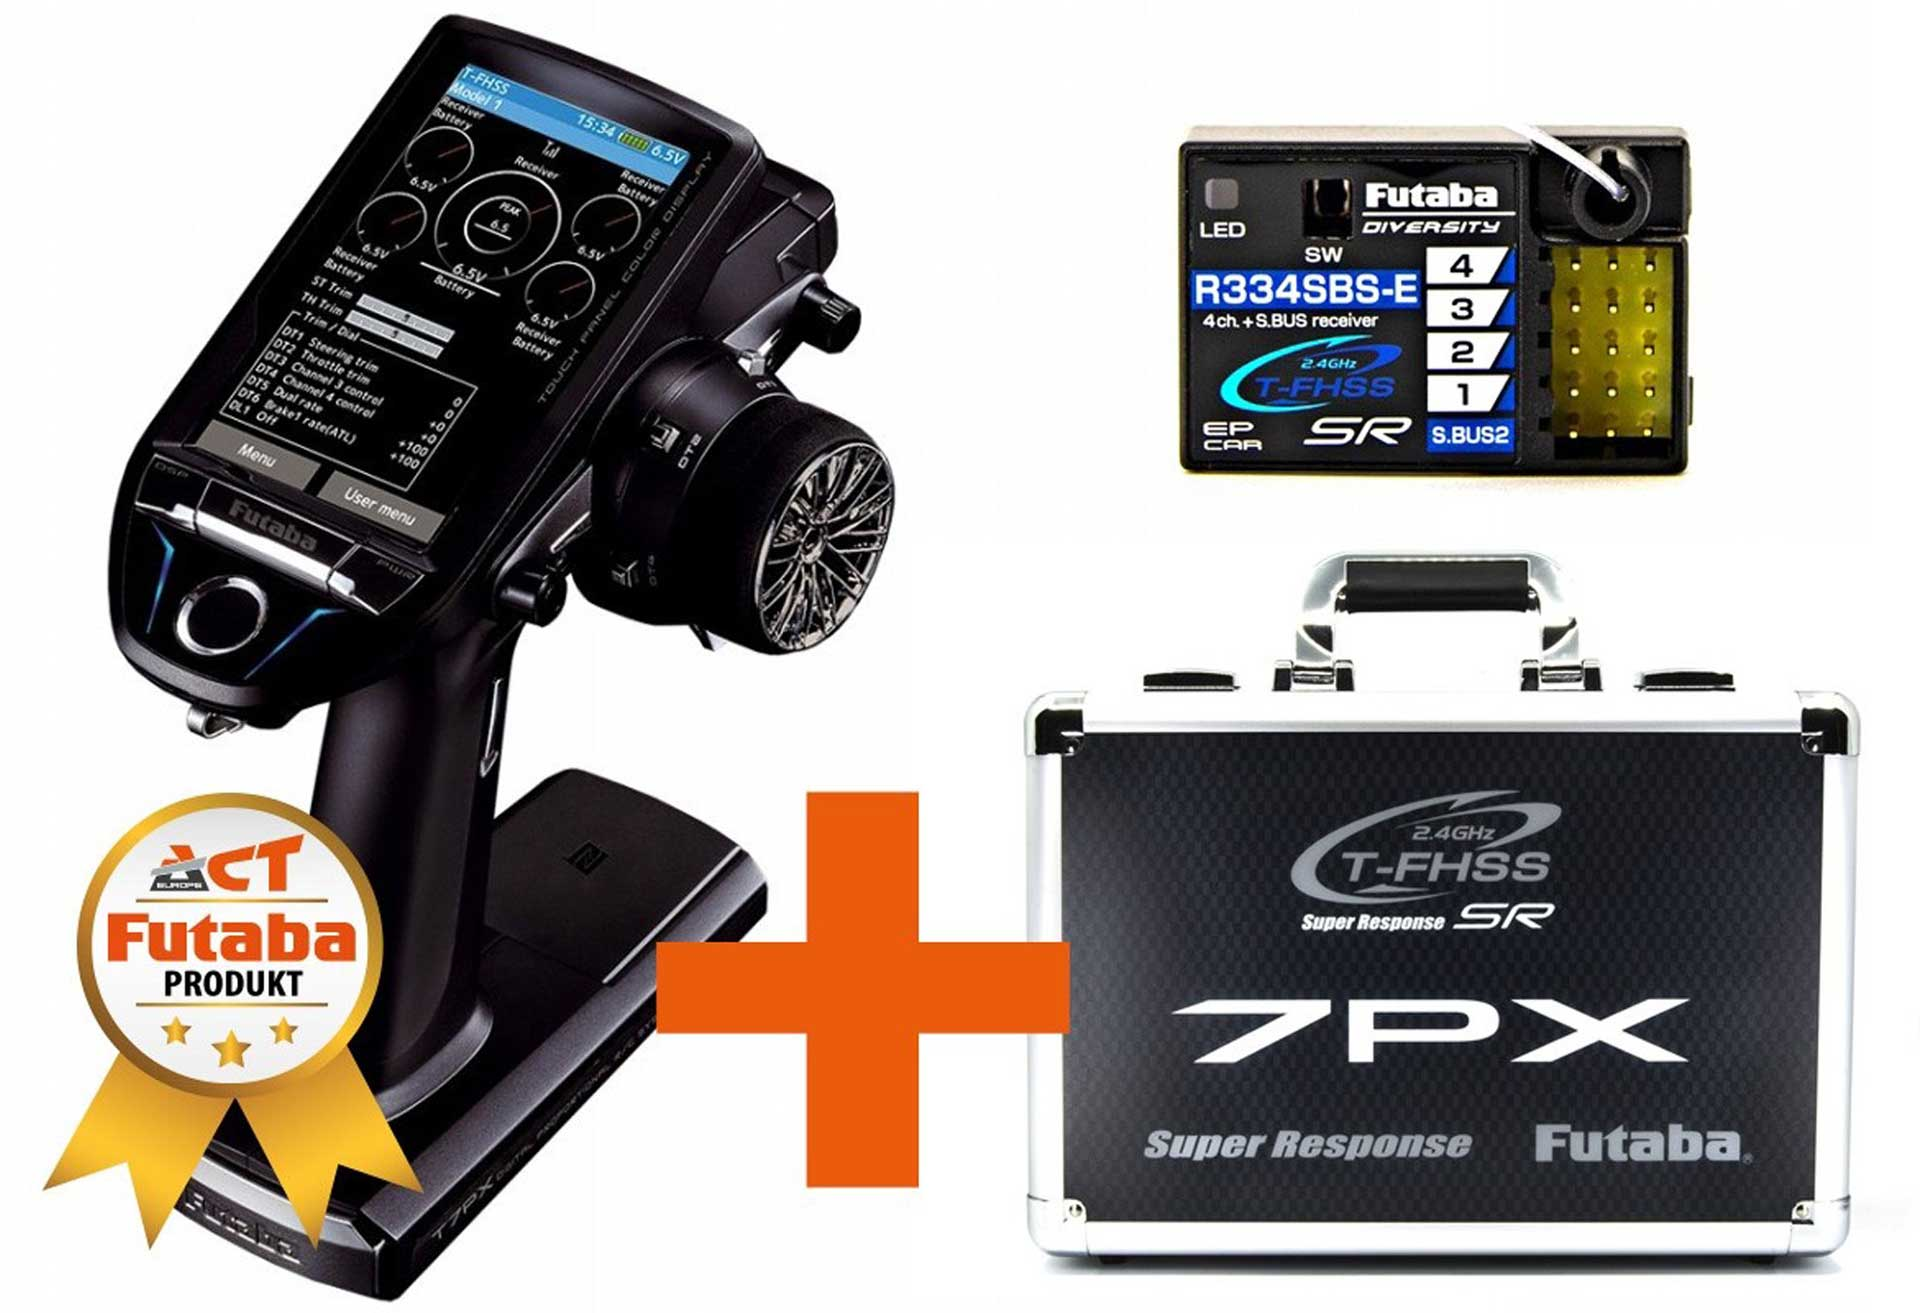 FUTABA T7PX 7-CHANNEL T-FHSS SR WITH R334SBS-E AND TRANSMITTER CASE